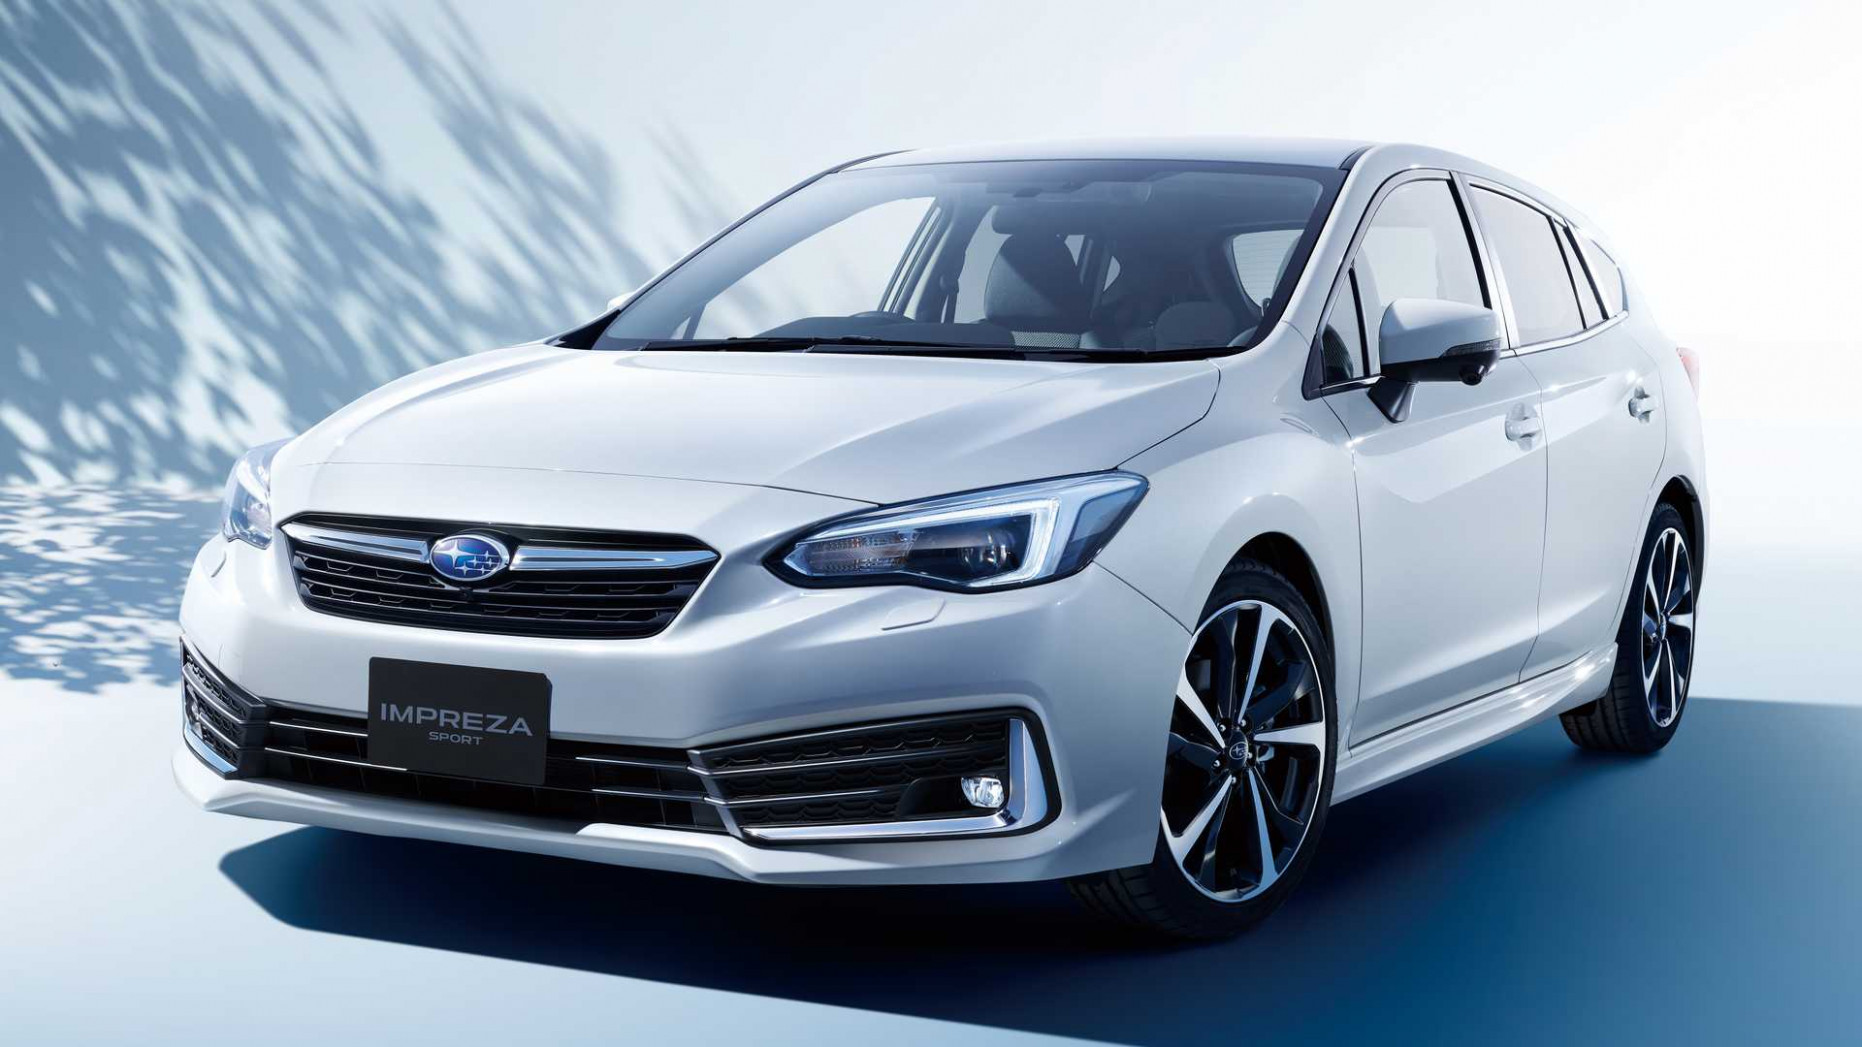 10 Subaru Impreza Revealed In Japan, But Where's The WRX?